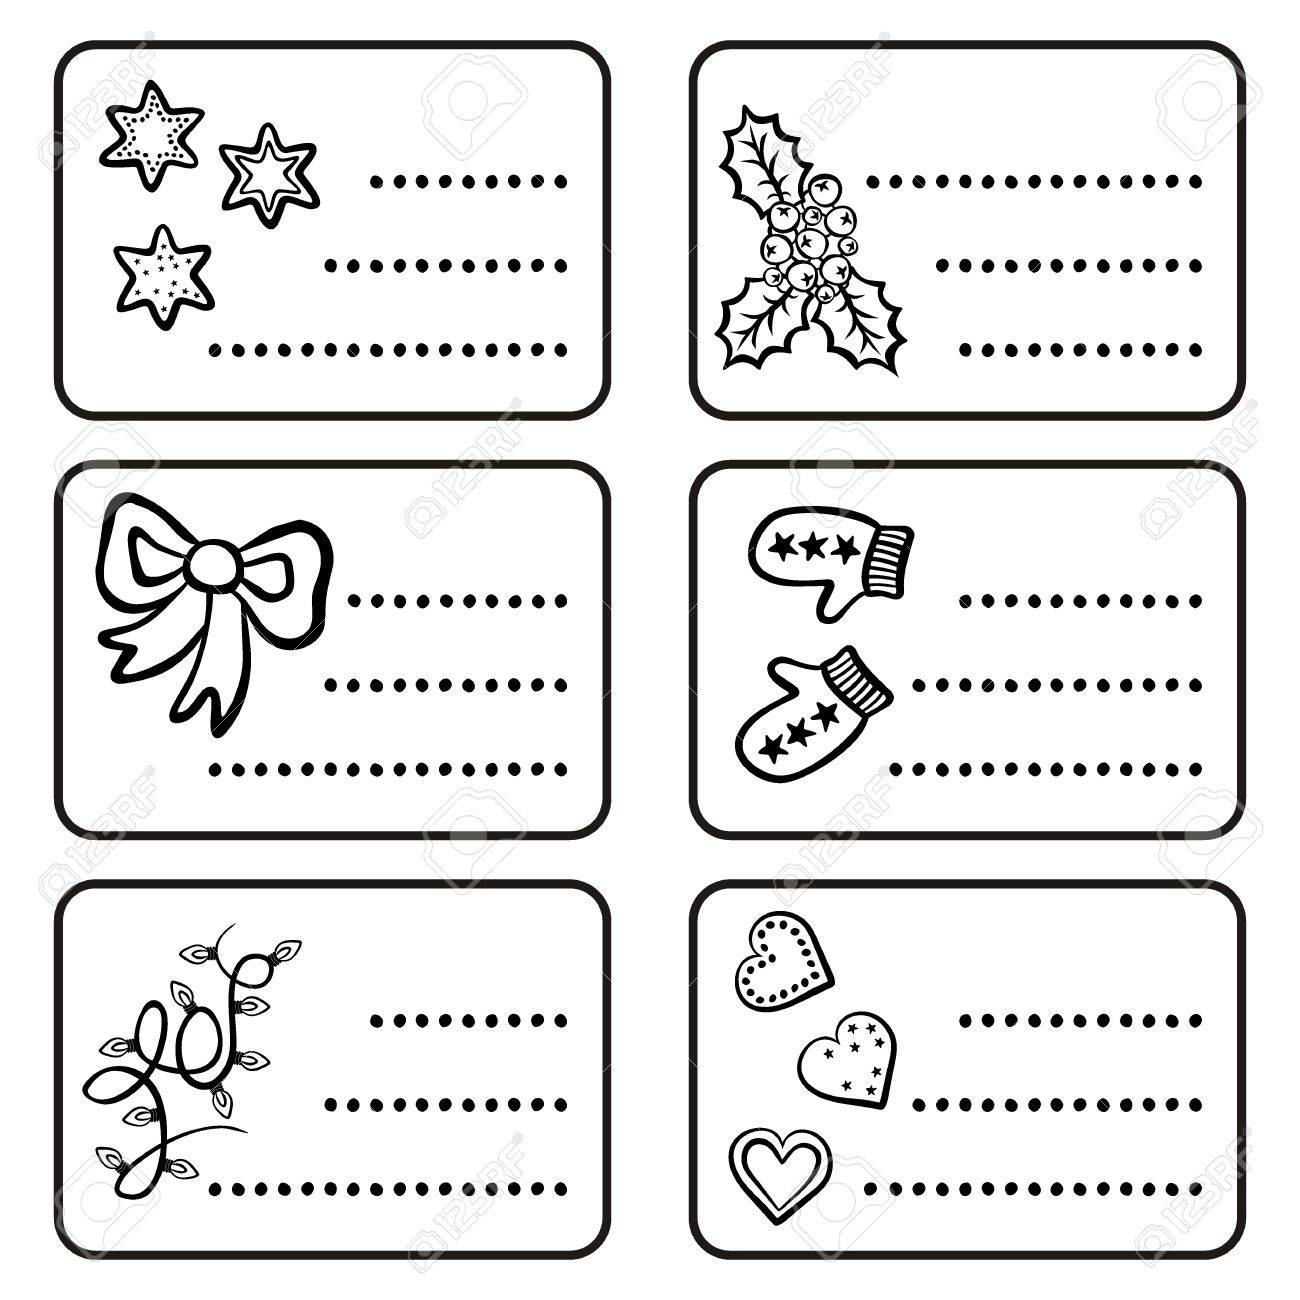 monochrome black and white winter holidays Christmas time gift label sticker set with winter Christmas related illustrations on white background Stock Vector - 23849118